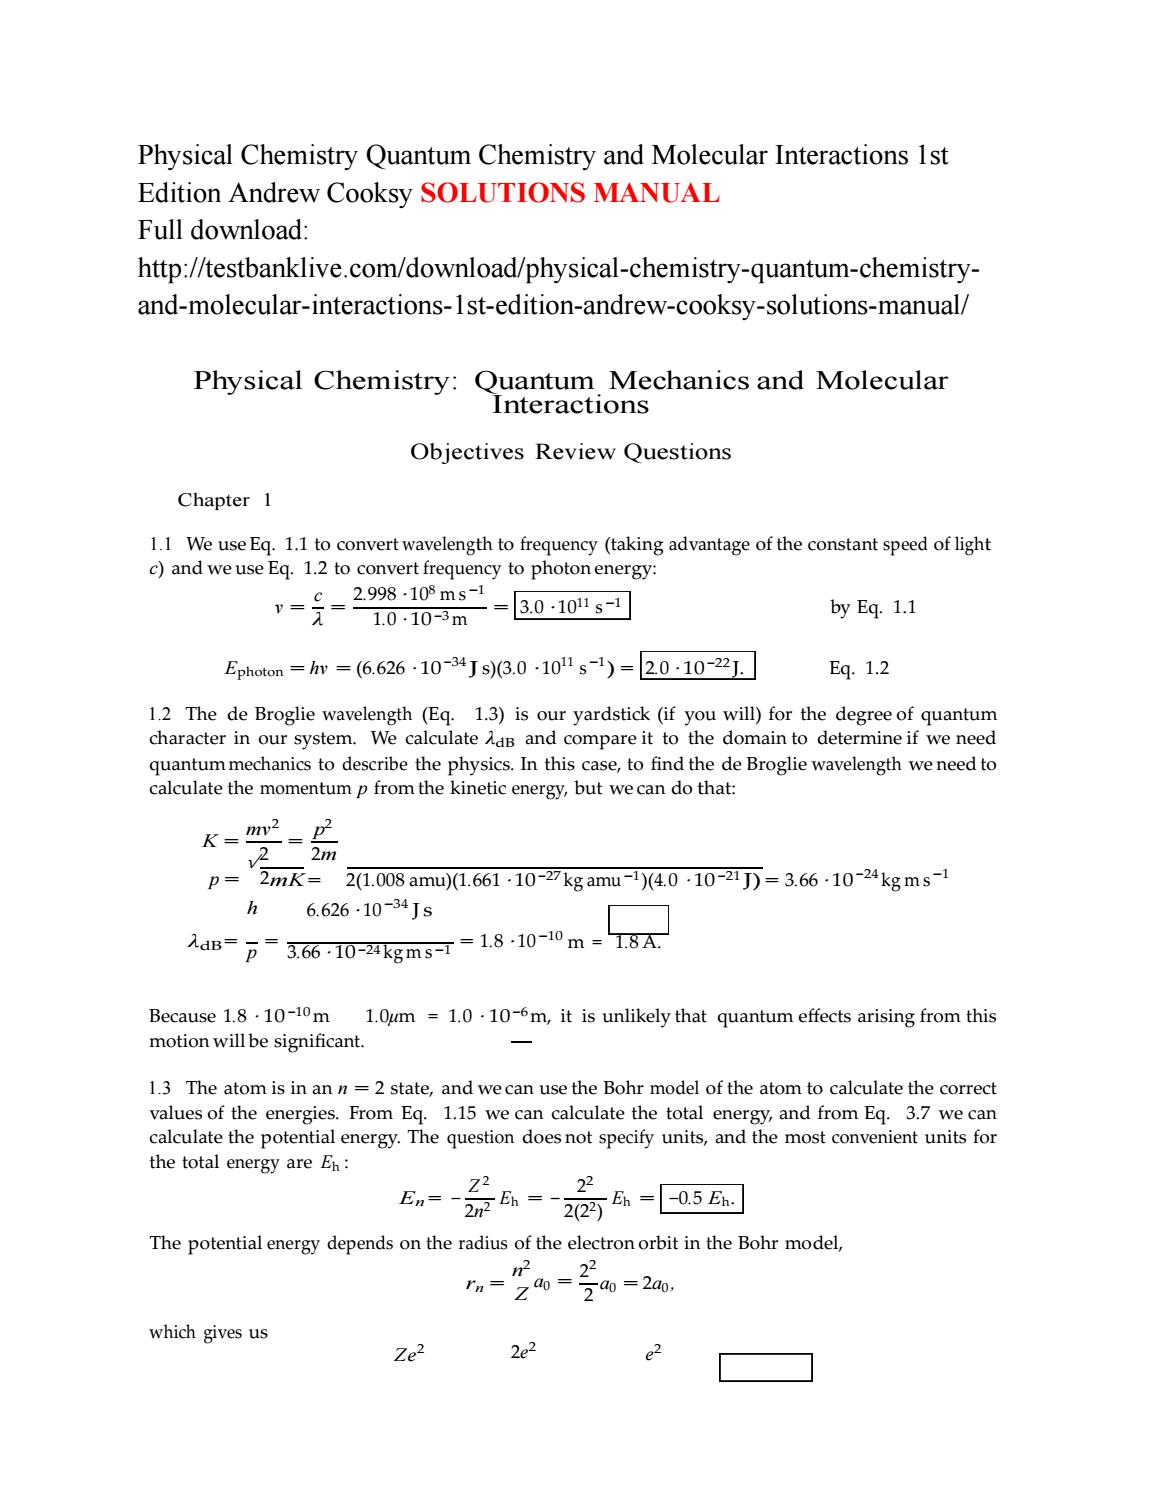 Physical chemistry quantum chemistry and molecular interactions 1st edition  andrew cooksy solutions by Lind111 - issuu